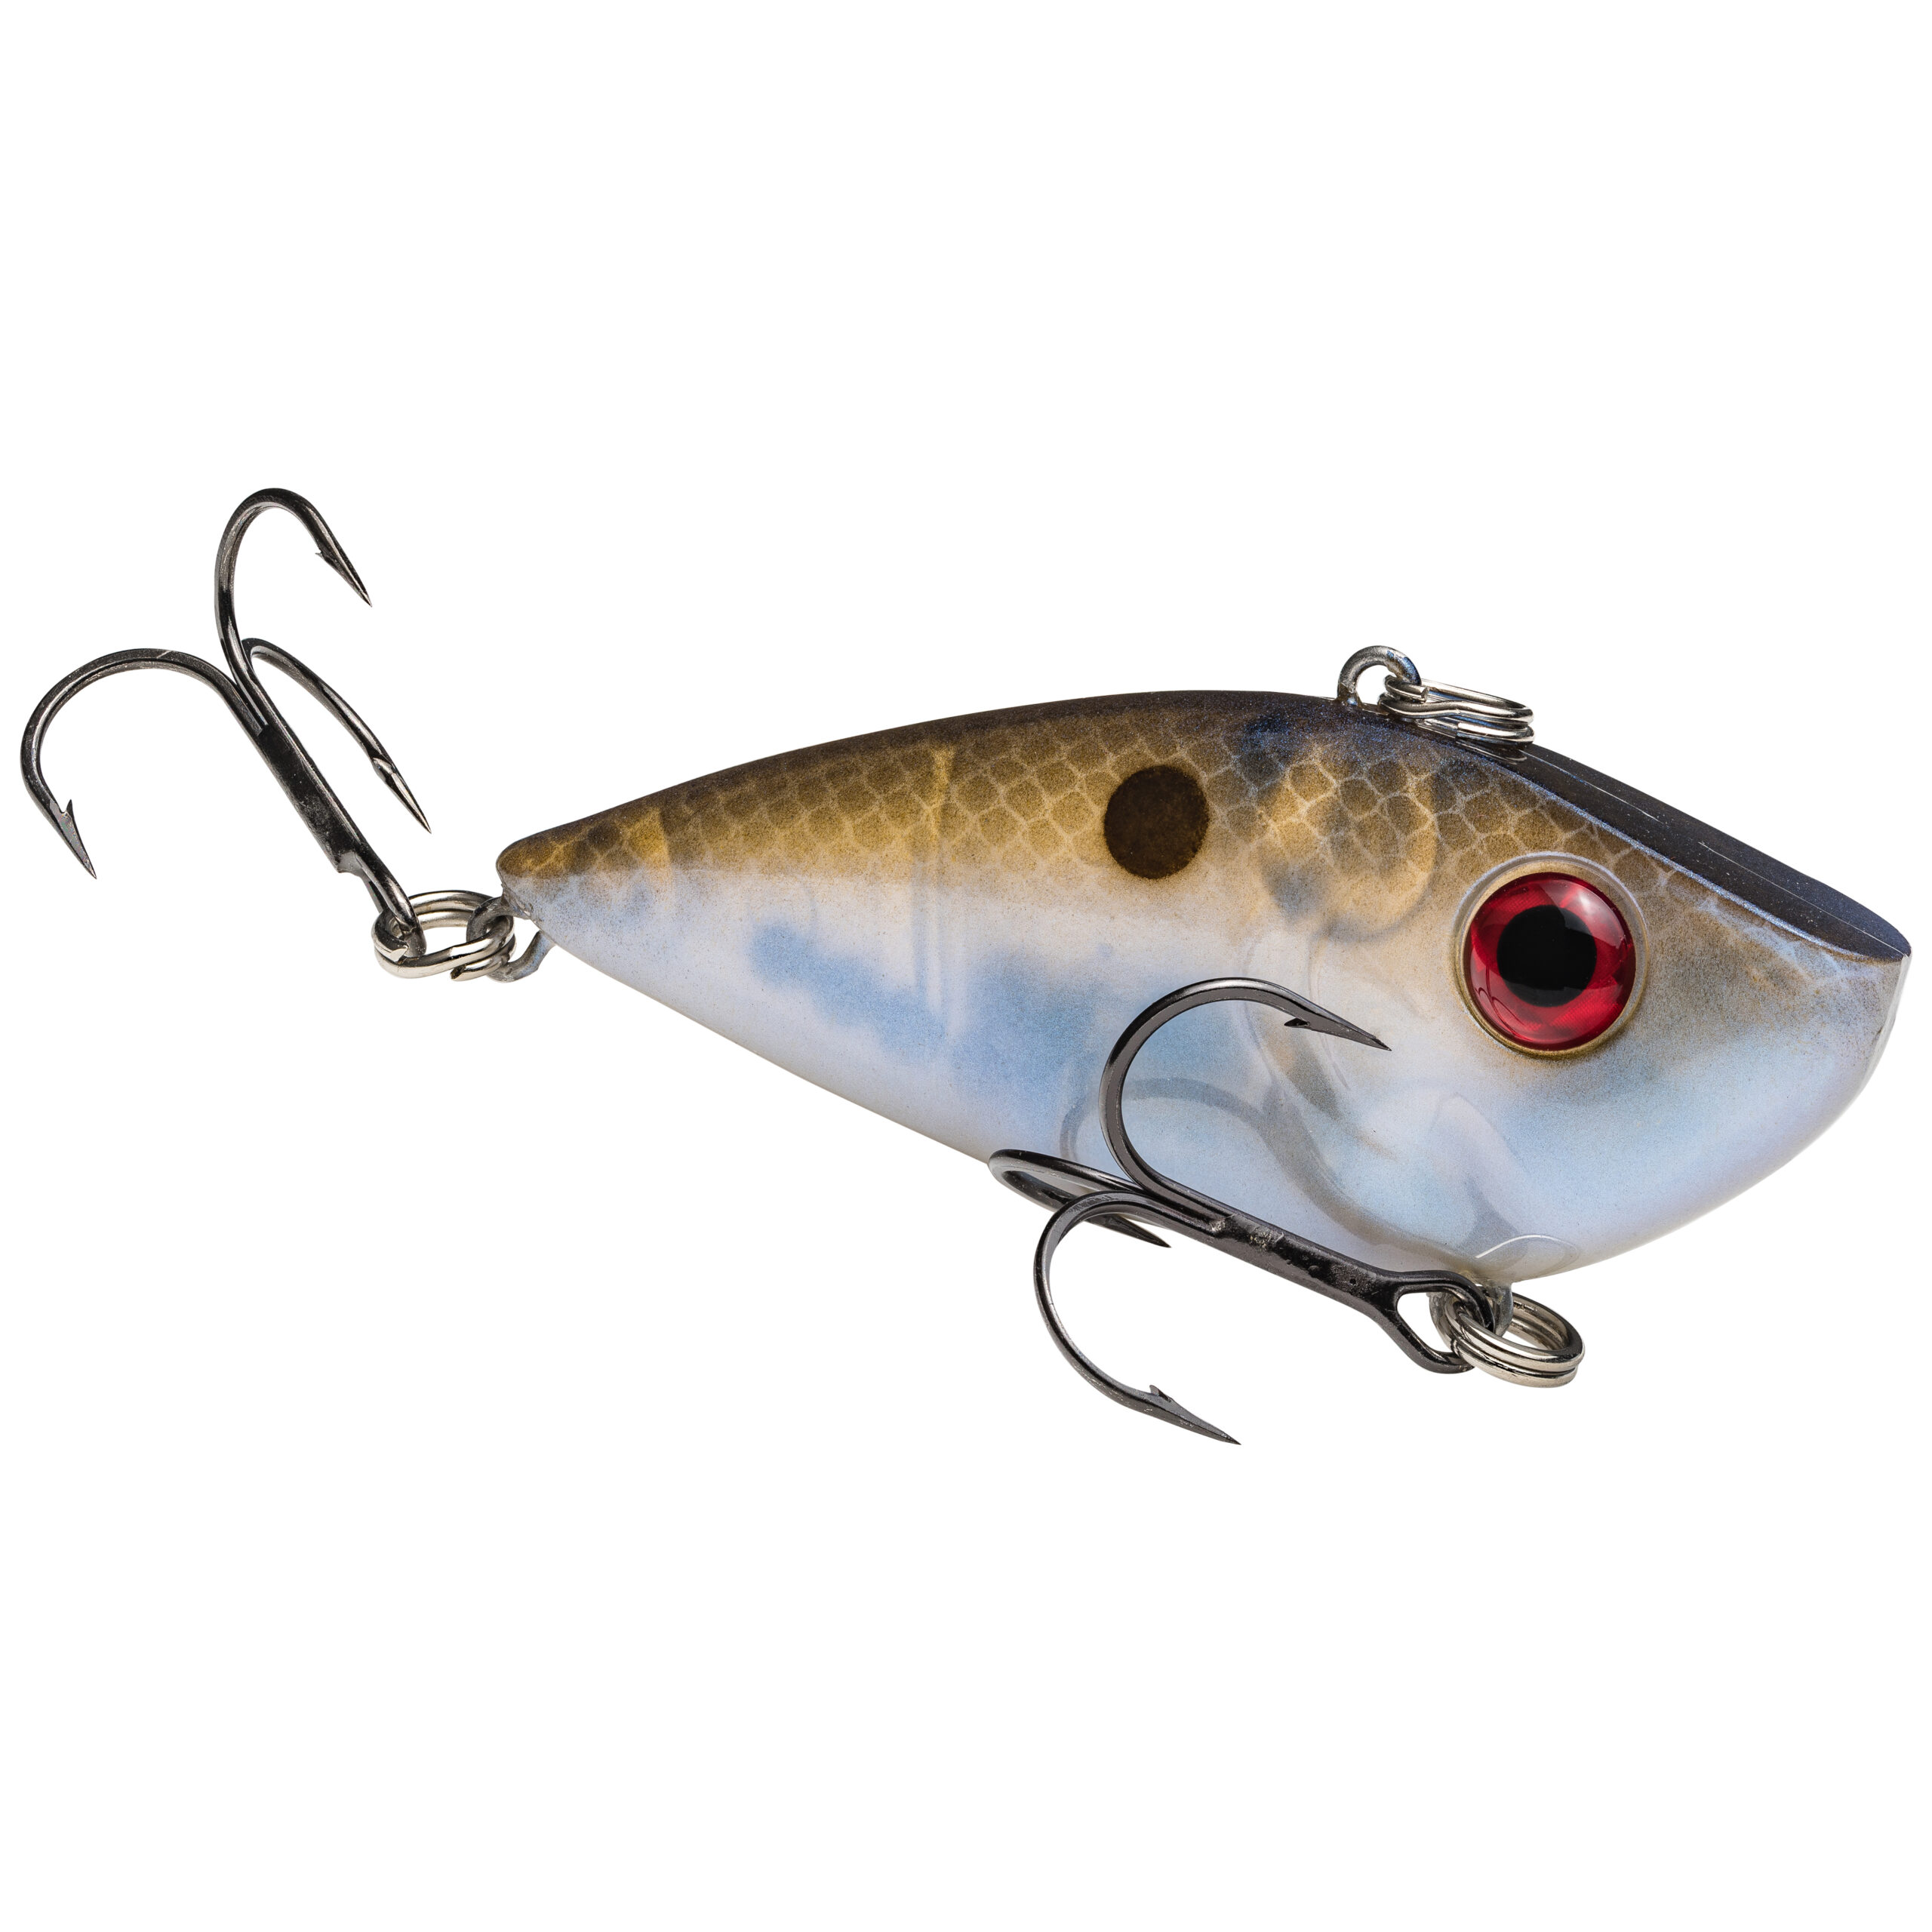 Strike King Lures – Crankbaits – Lipless Rattle Trap – Red Eyed Shad - 1/4oz - REYESD14-583 - Blue Gizzard Shad